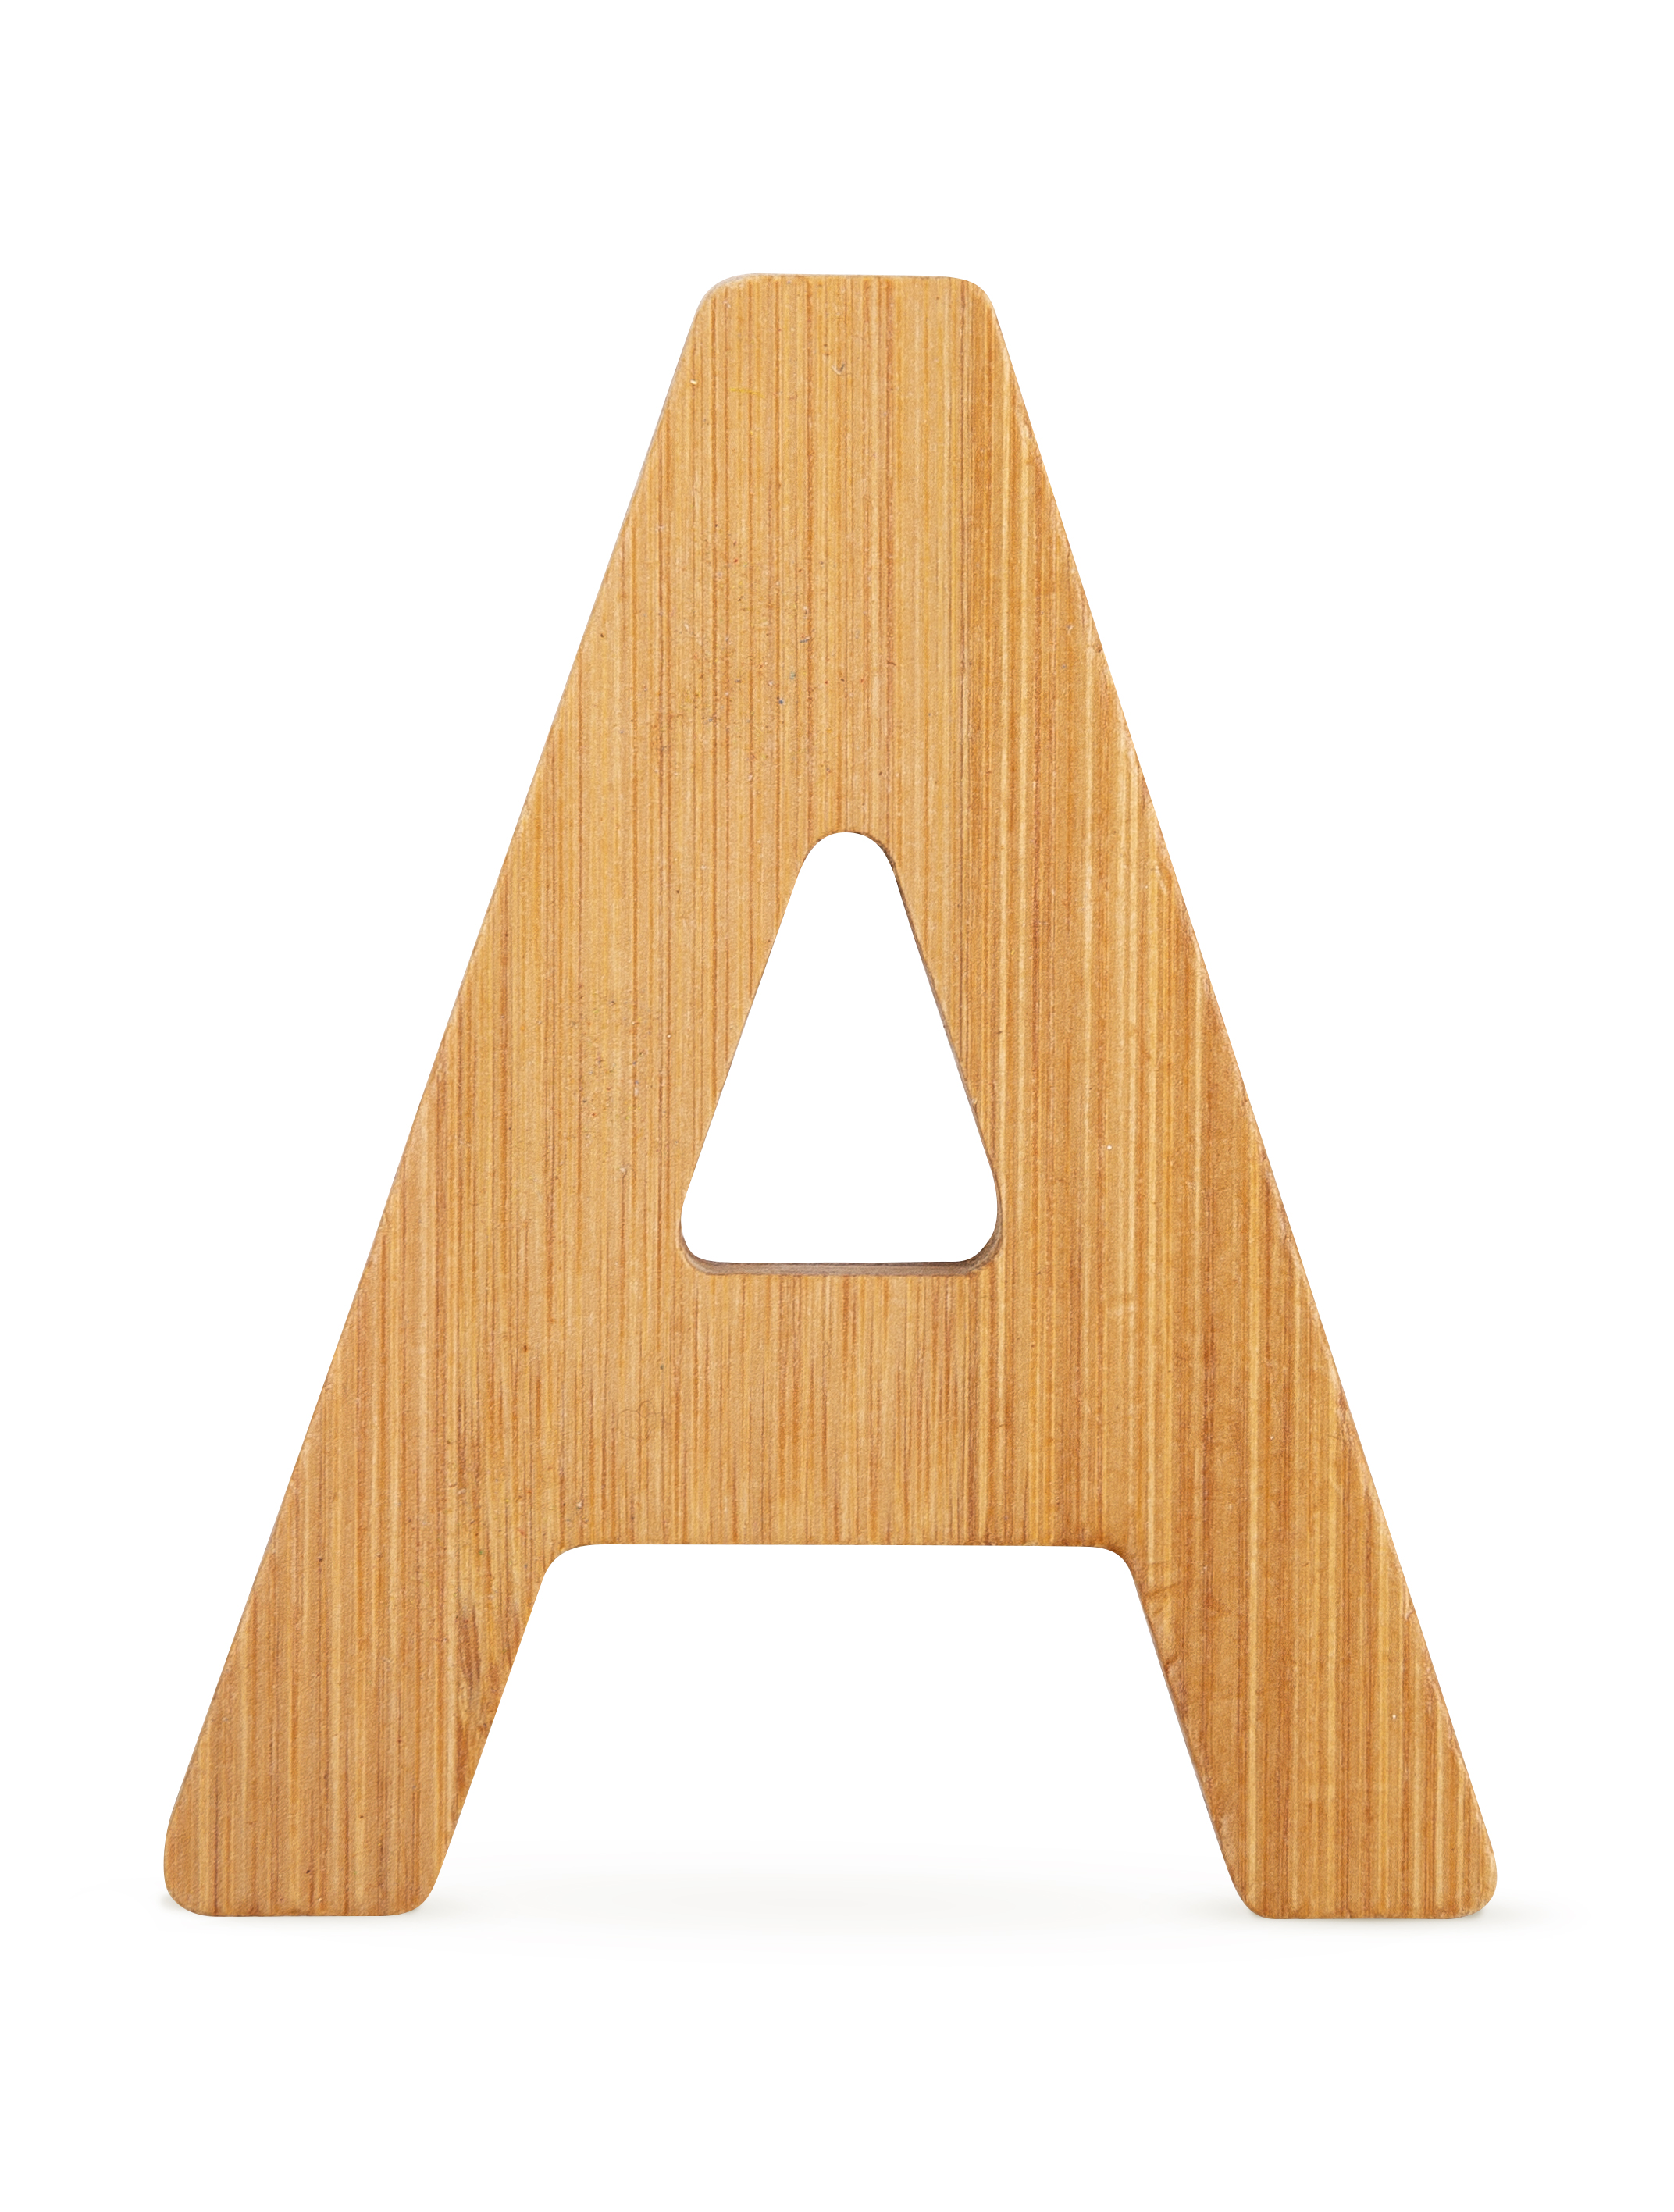 ABC Bamboo Letters A